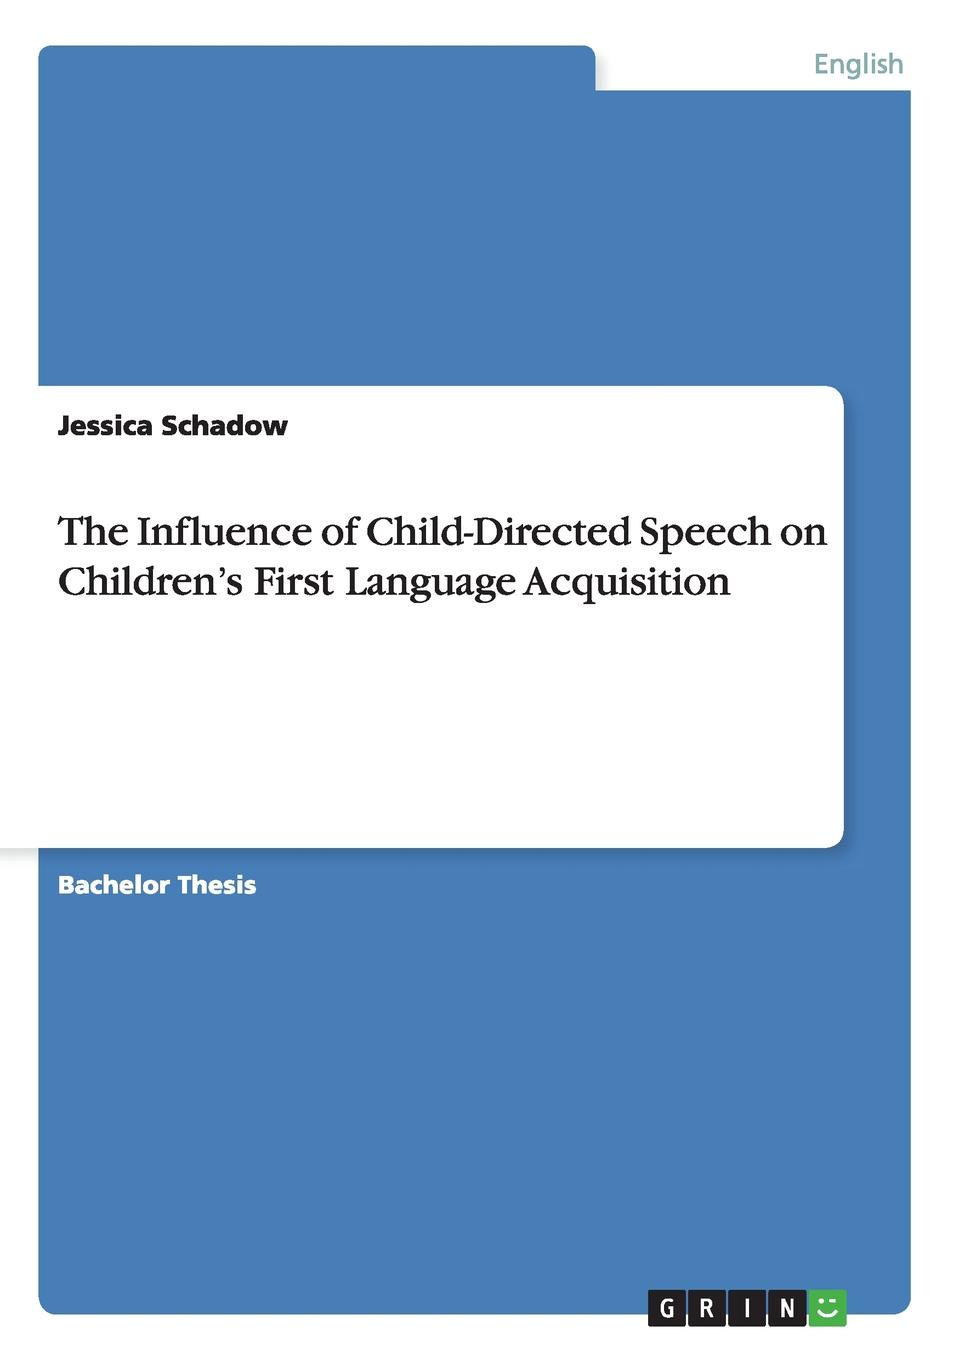 Jessica Schadow The Influence of Child-Directed Speech on Children.s First Language Acquisition kerstin köck language acquisition nativism vs contructivism